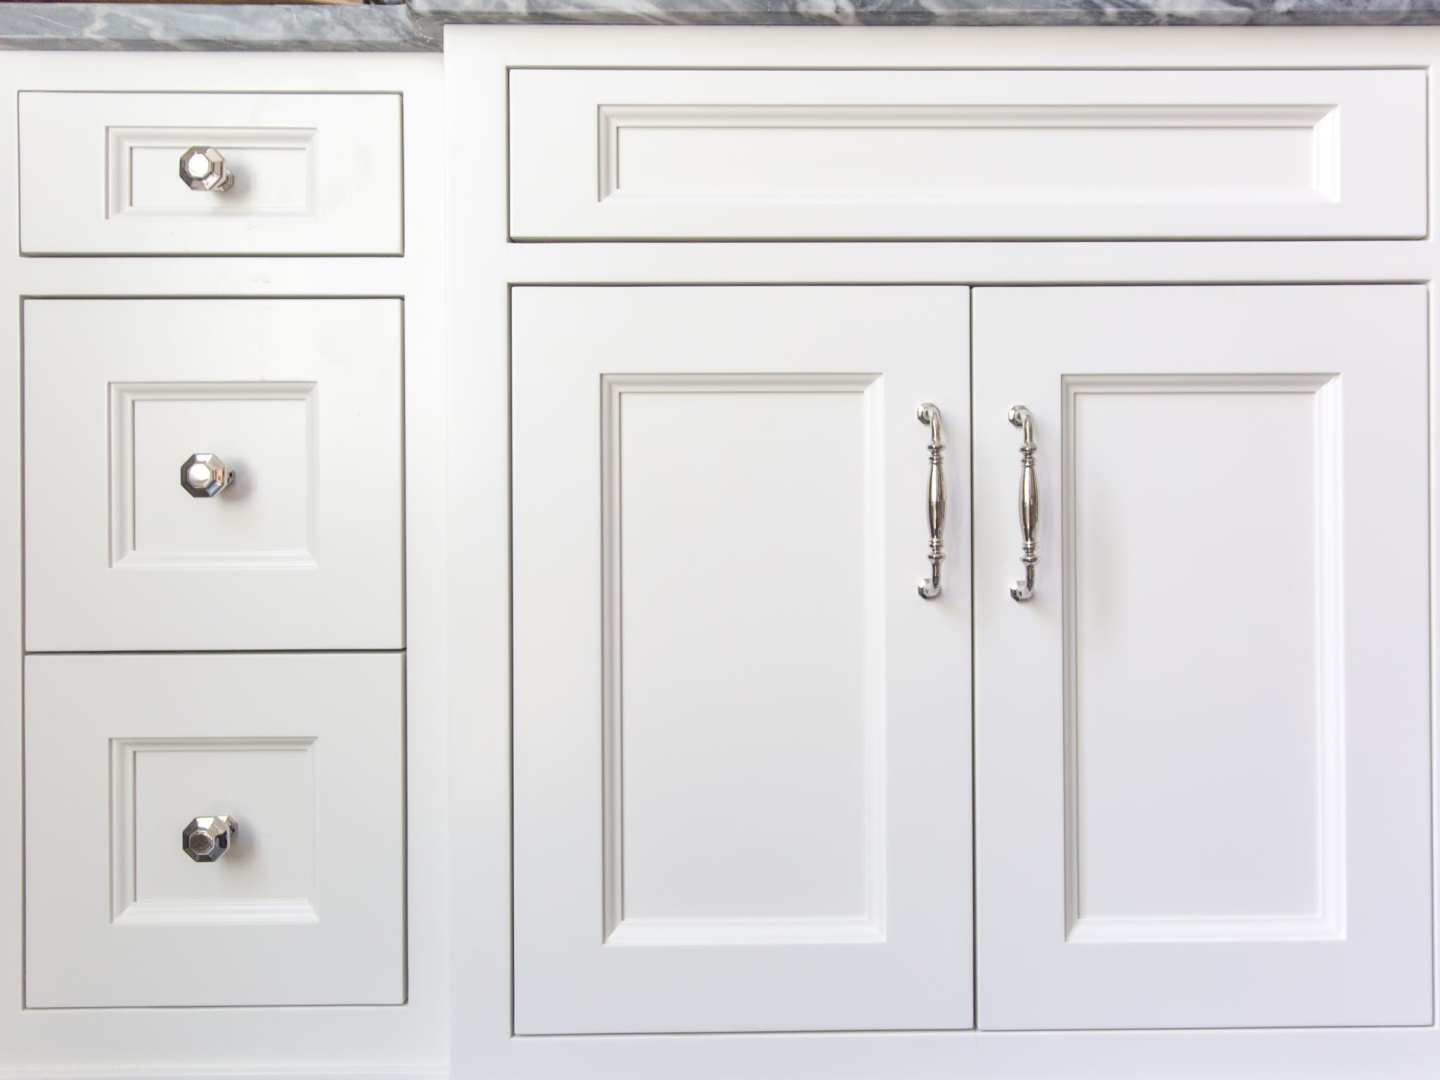 How to choose bathroom hardware. Mixing pulls and knobs on cabinets.